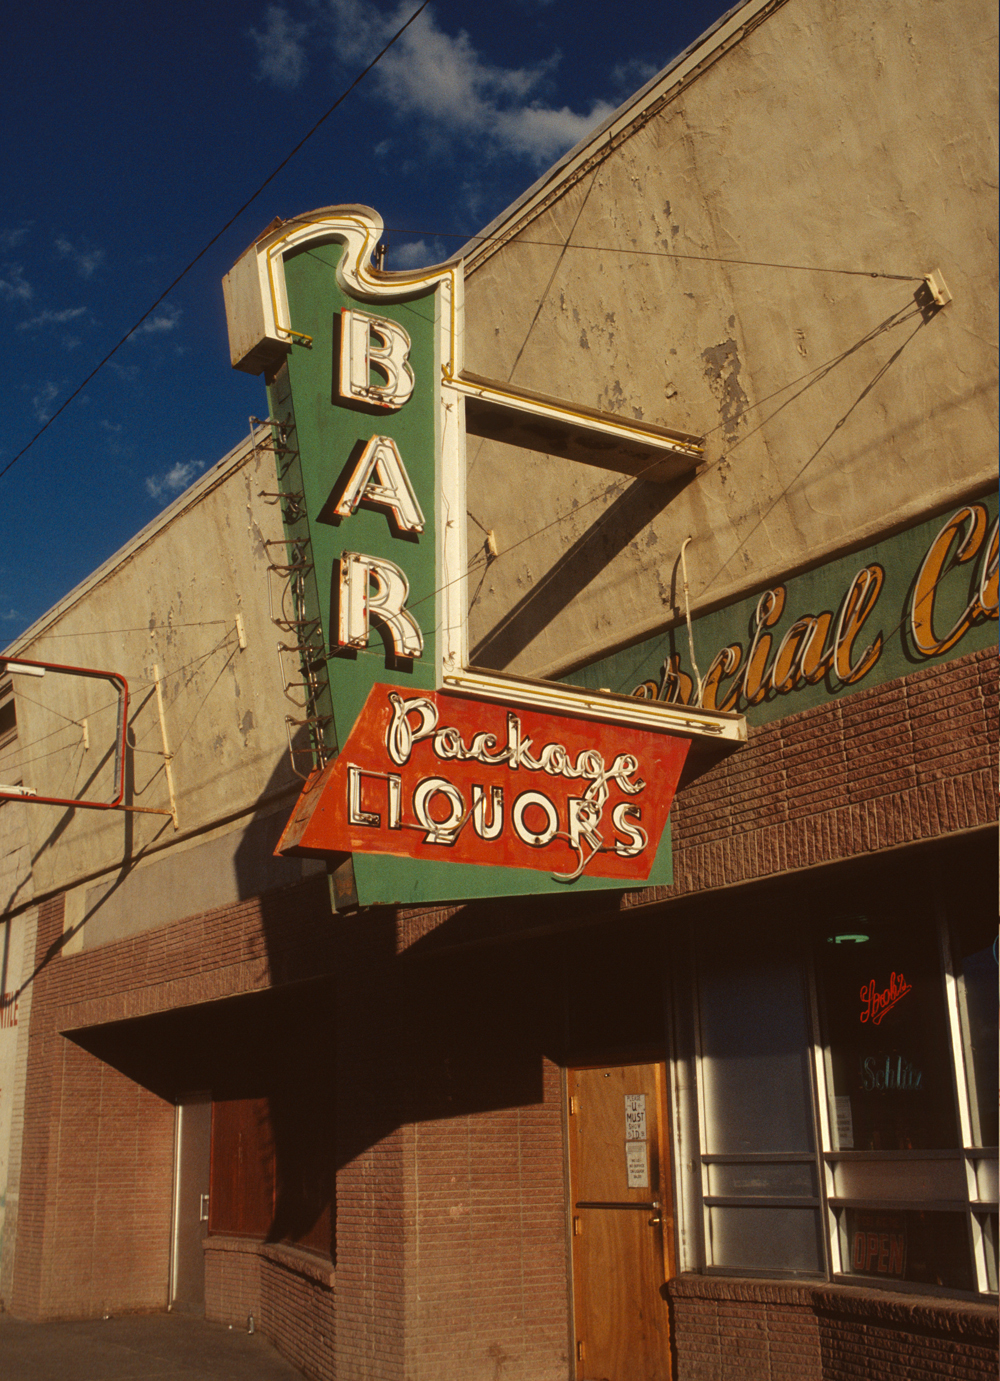 Bar, photographed in Colorado